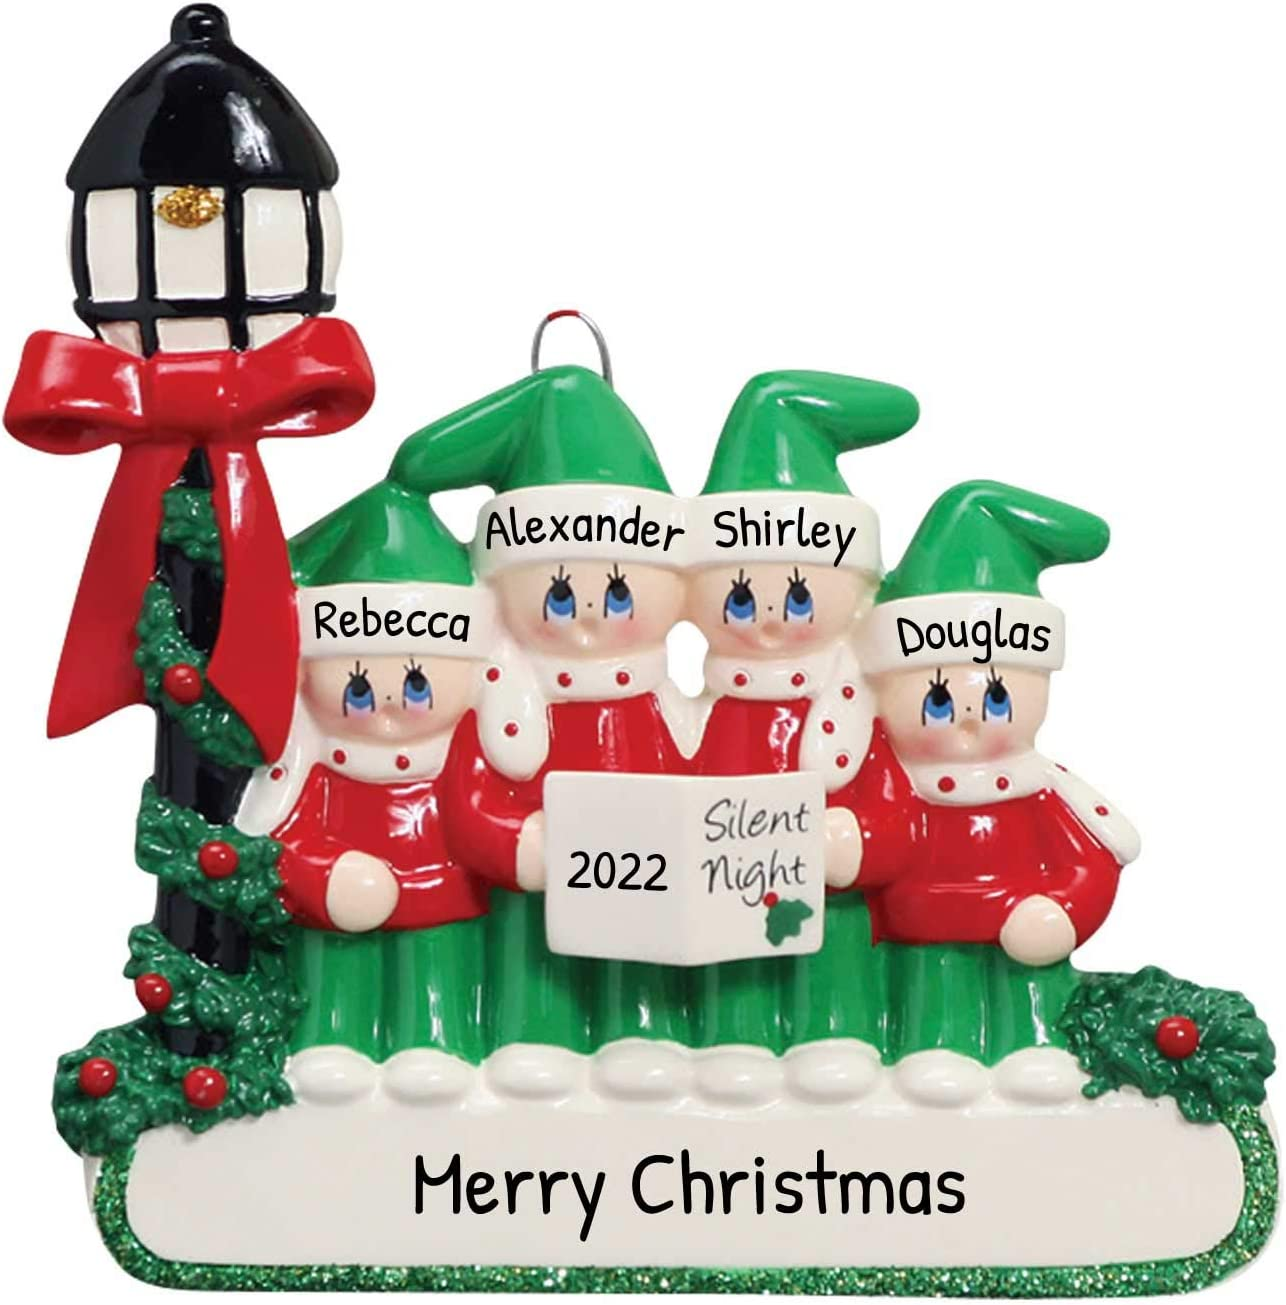 Religious Christmas 2020 Images Amazon.com: Personalized Carolers Family of 4 Christmas Tree